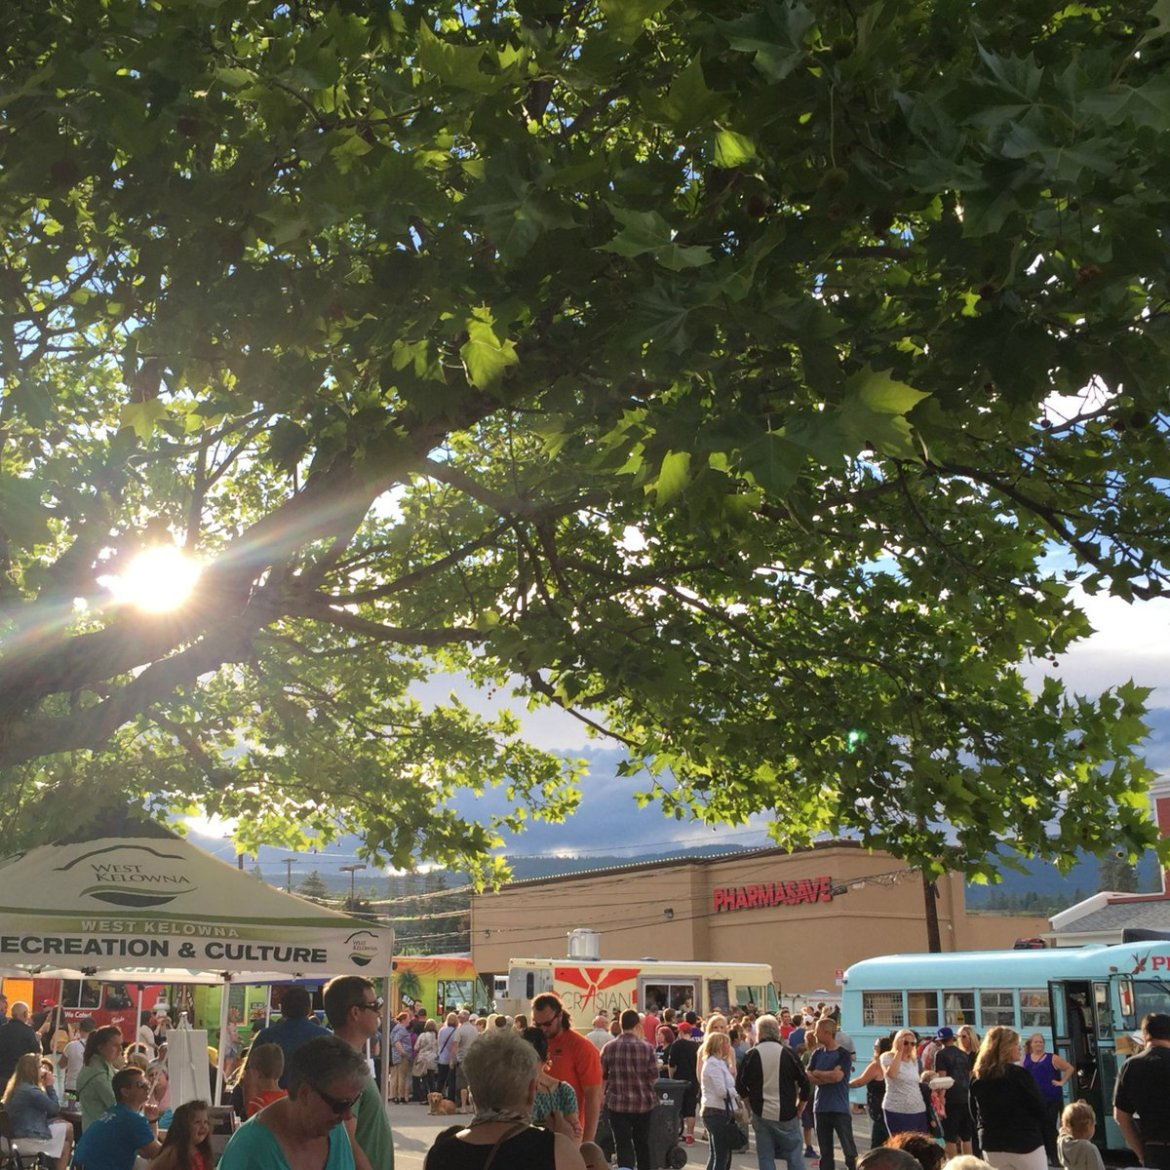 test Twitter Media - The Okanagan Food Truck Fest returns to #WestKelowna on Thursday! #foodtruck https://t.co/I0RXk9ecxY https://t.co/NgjItmxUsI